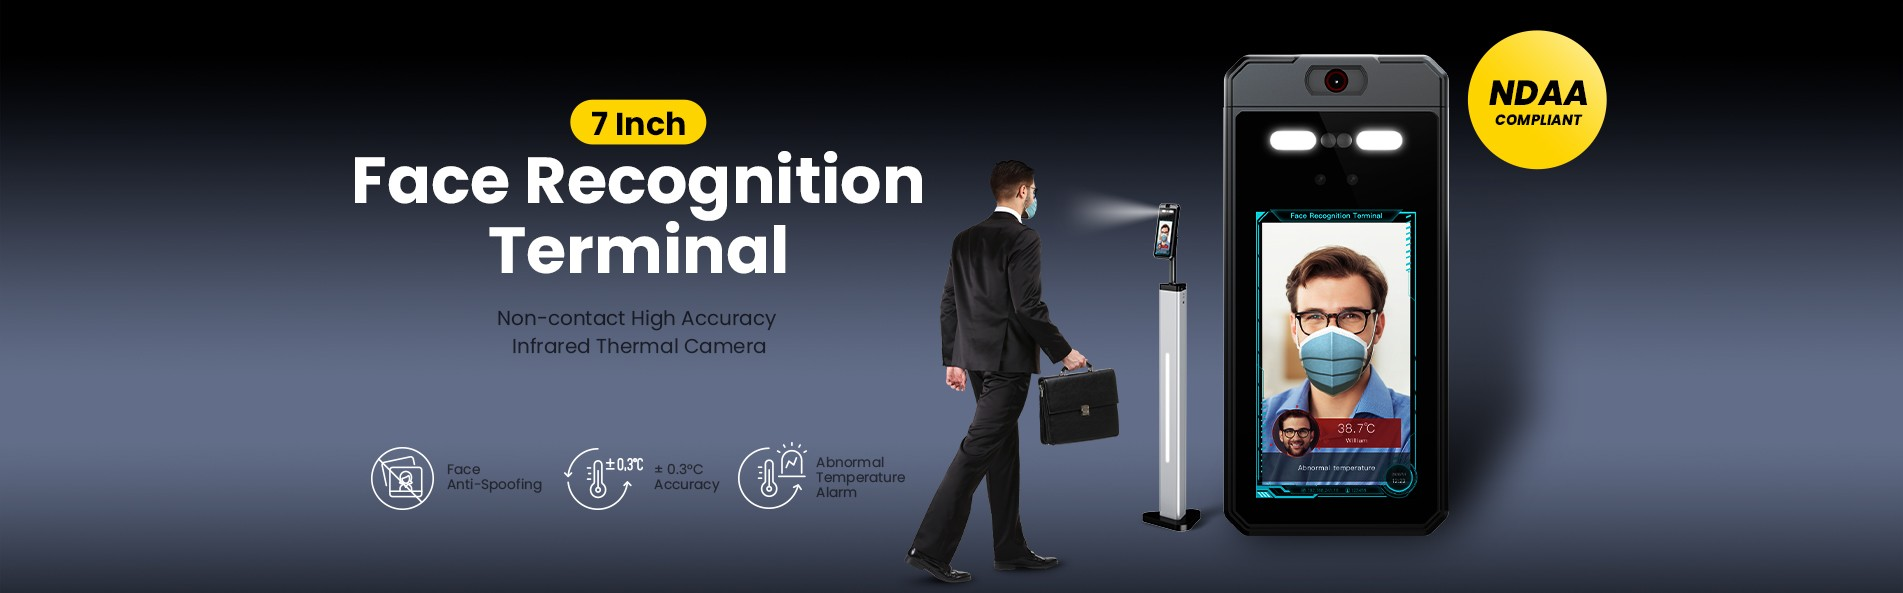 Sunell 7 inch Face Recognition Terminal